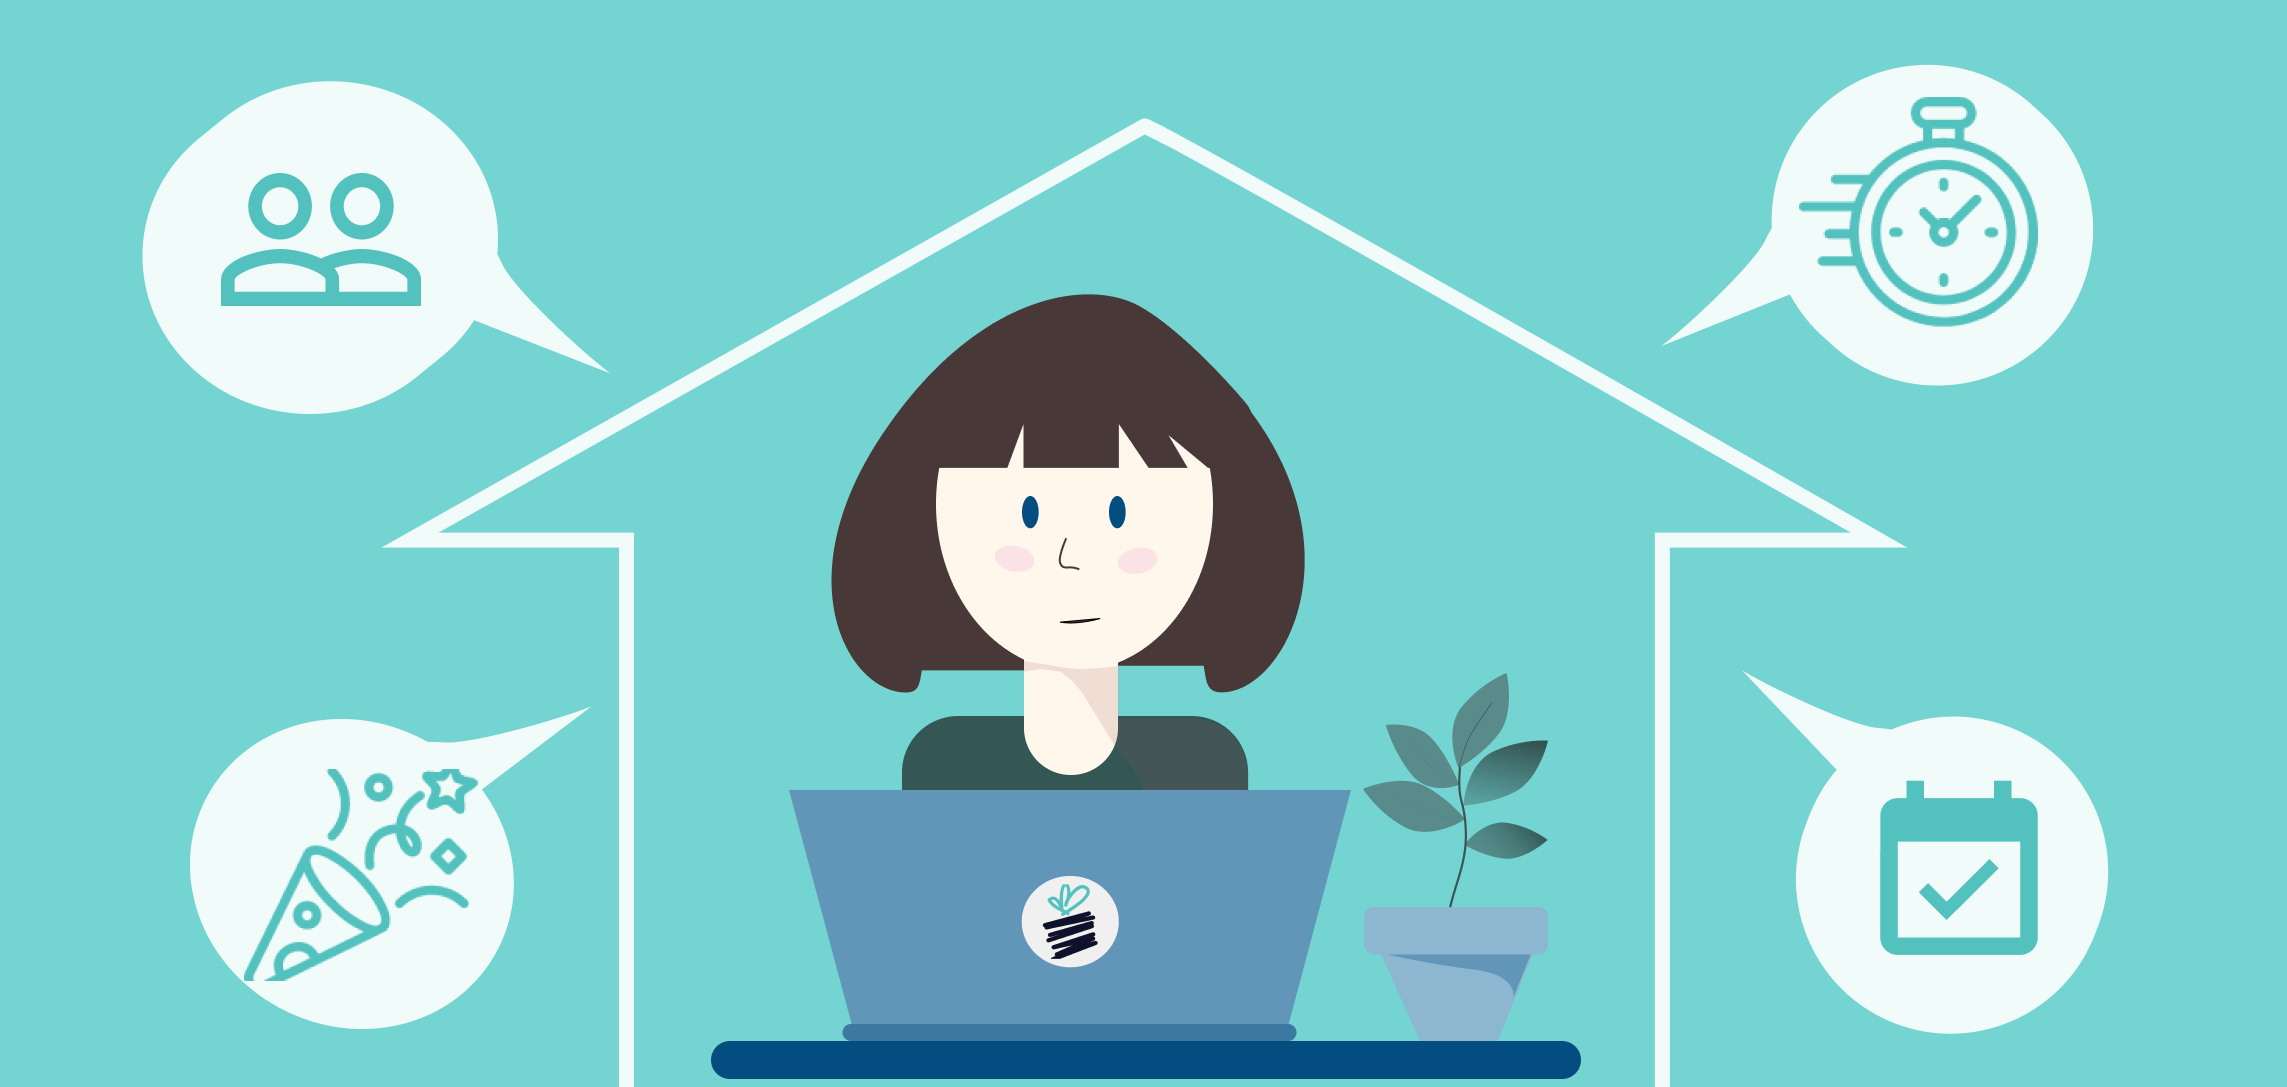 7 Tips to Efficiently Manage Your Remote Team